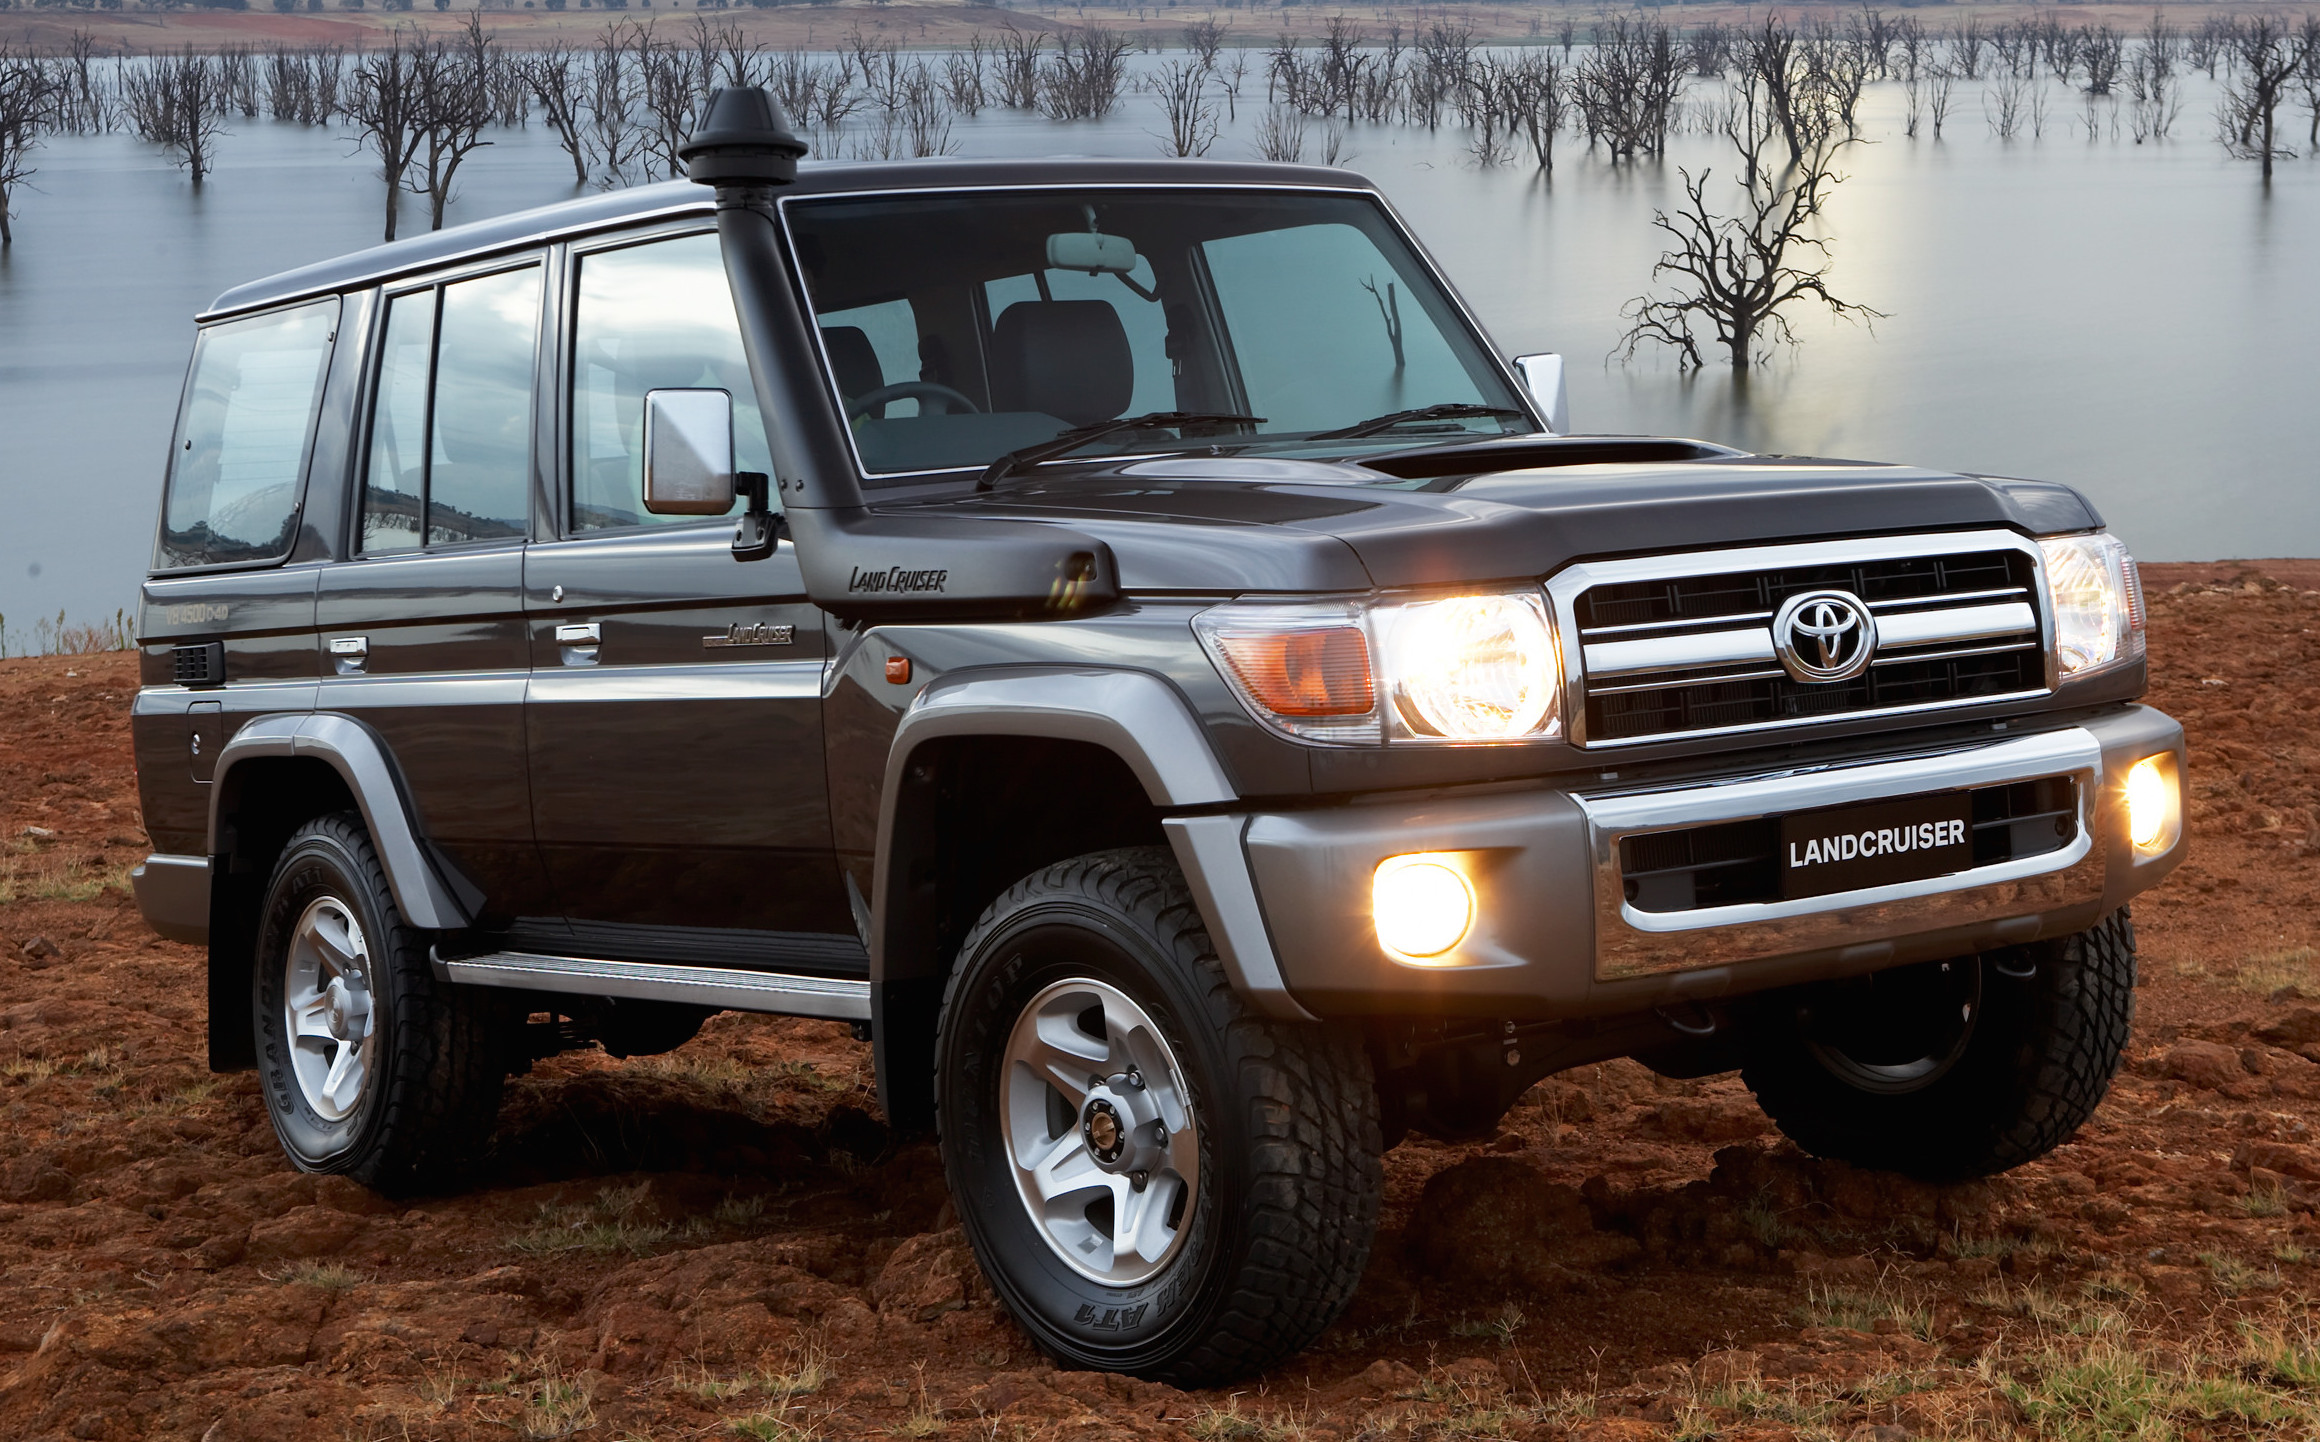 Toyota Land Cruiser 70 Set To Be 5 Star Ancap Rated